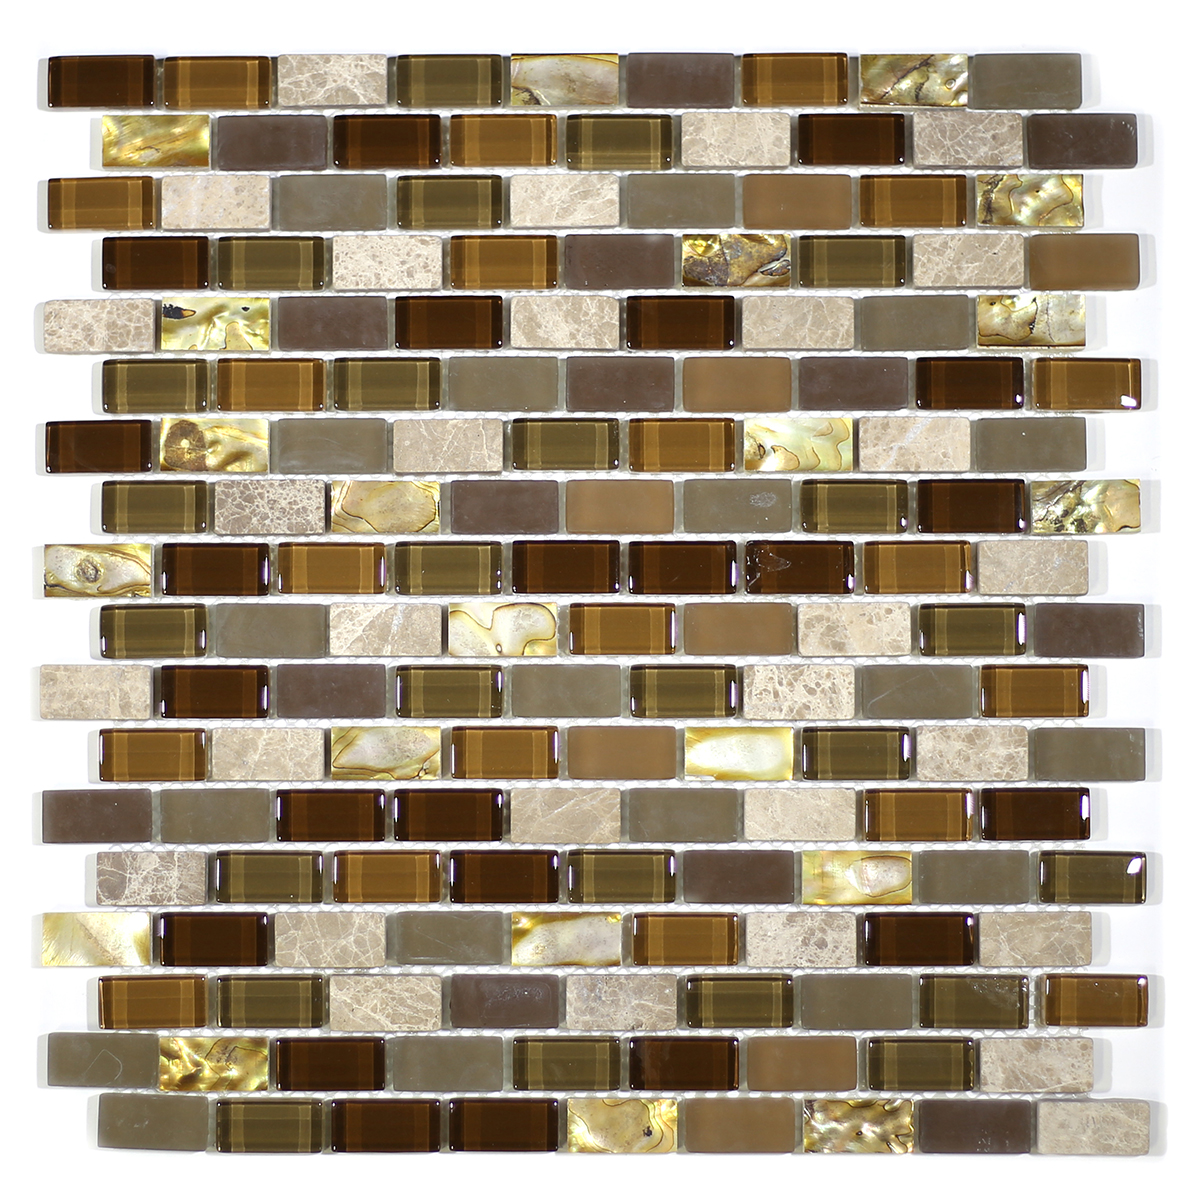 MA70-LB  BRICK SHELL, MARBLE AND GLASS MOSAIC